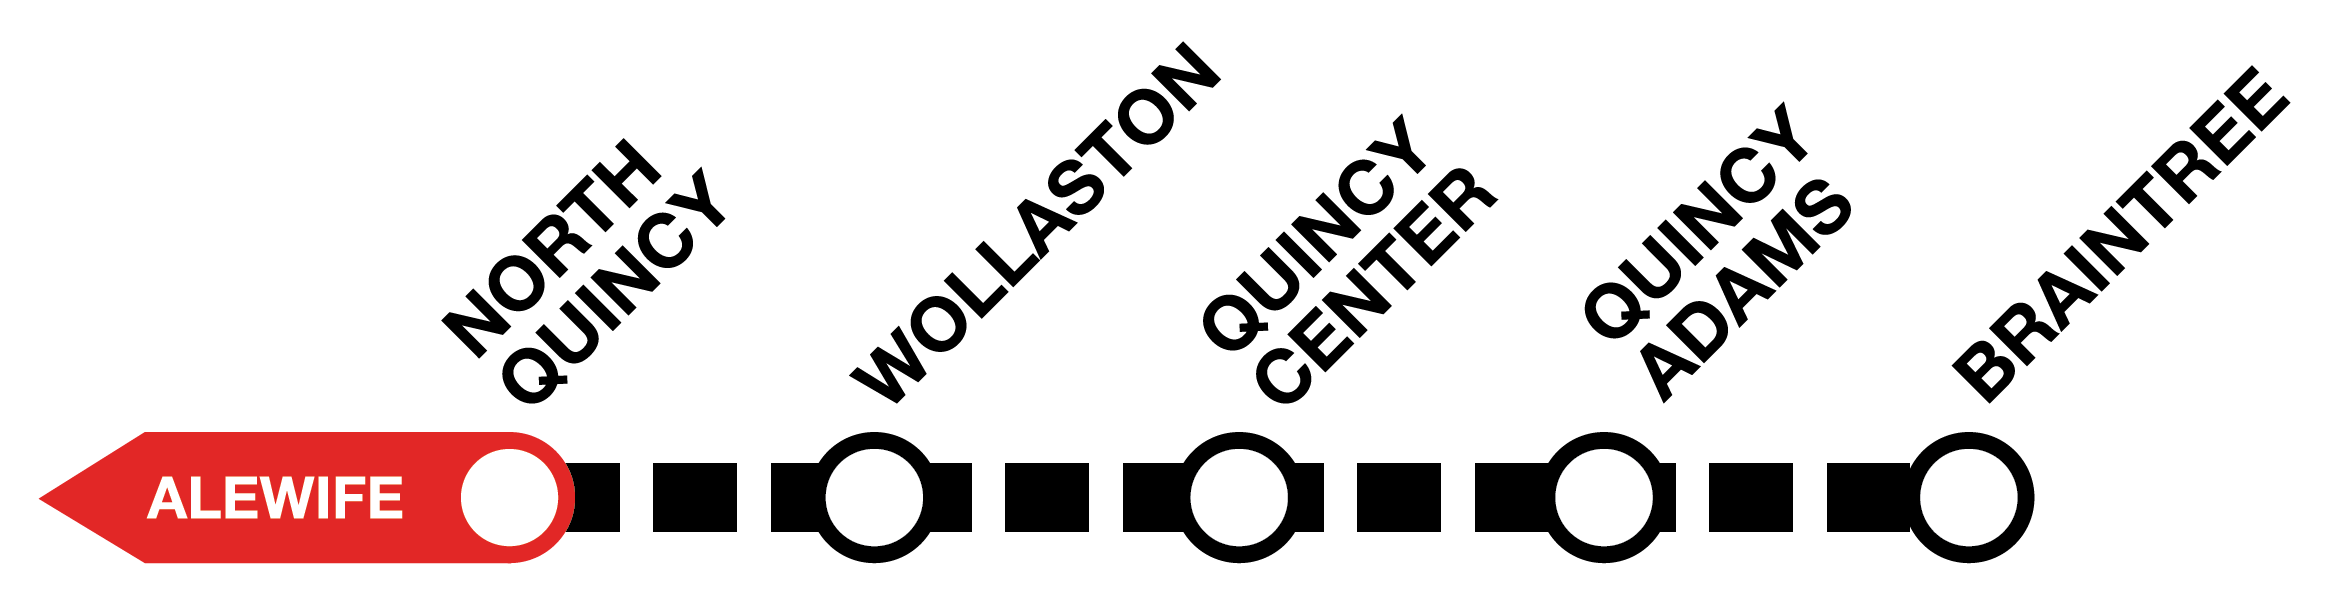 Graphic showing shuttle service between Braintree and North Quincy Stations